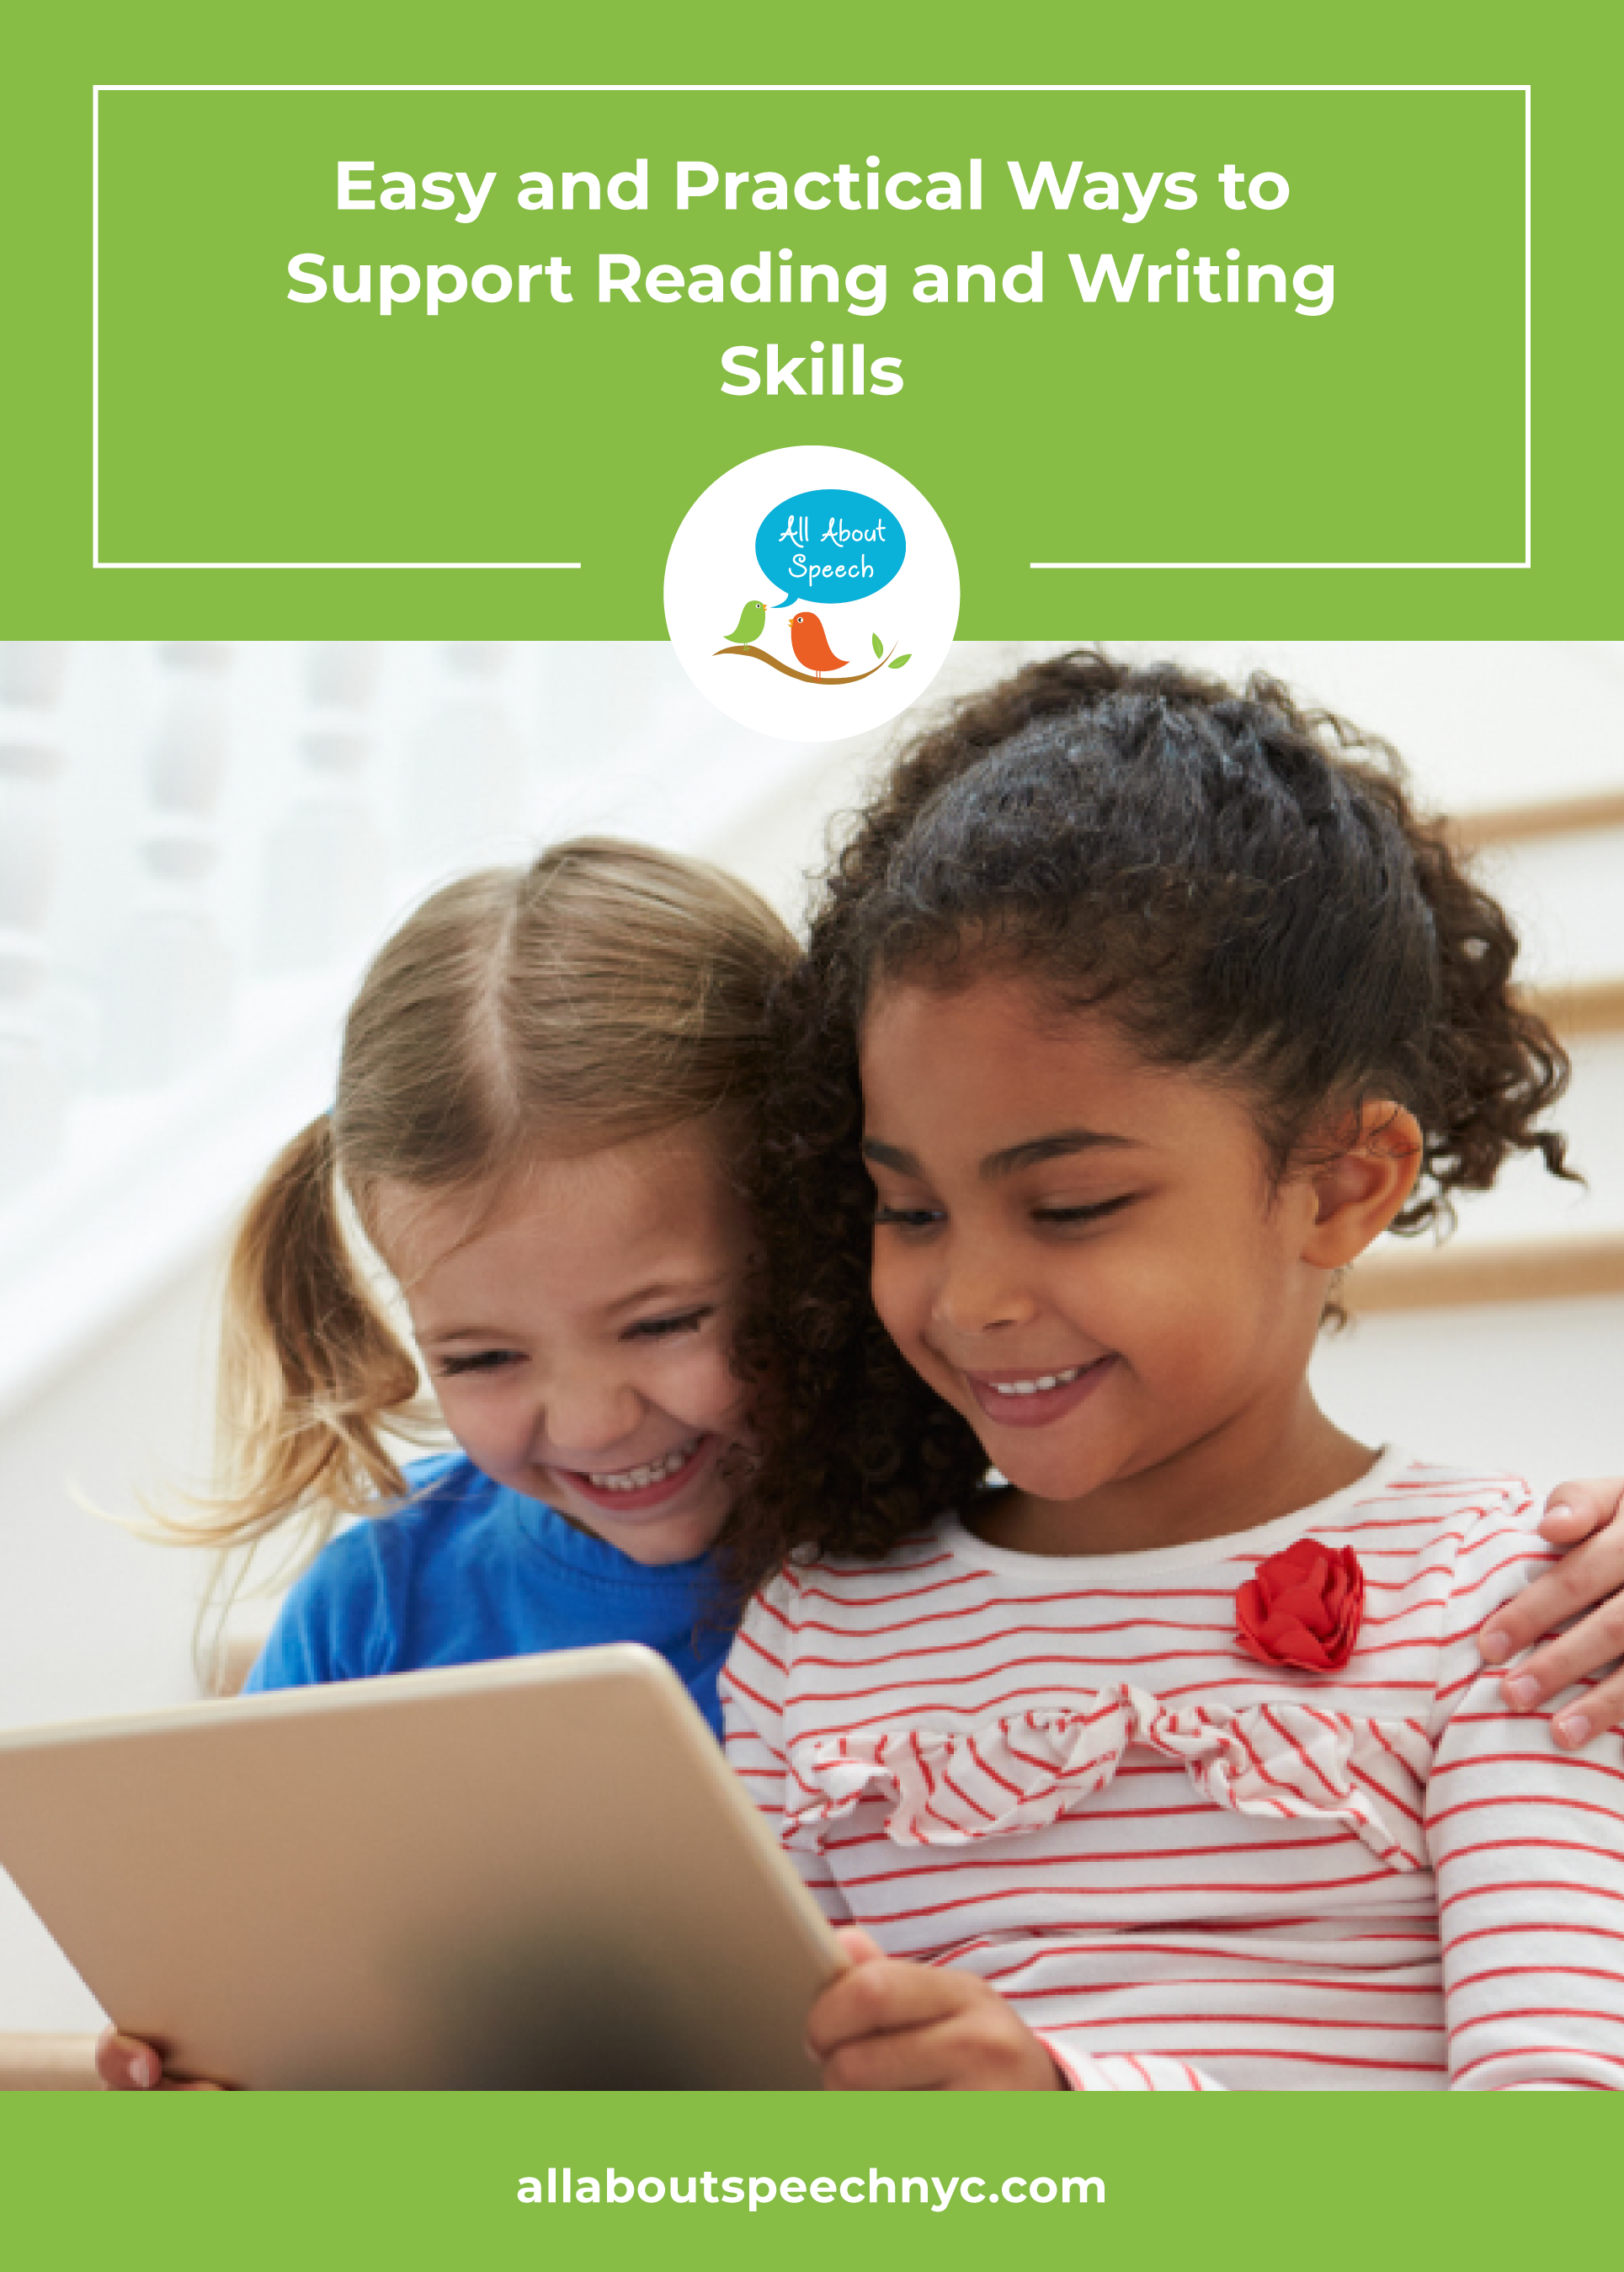 Best-Speech-Pathology-Blog-for-Kids-Fostering-Reading-and-Writing-for-your-Kids.jpg